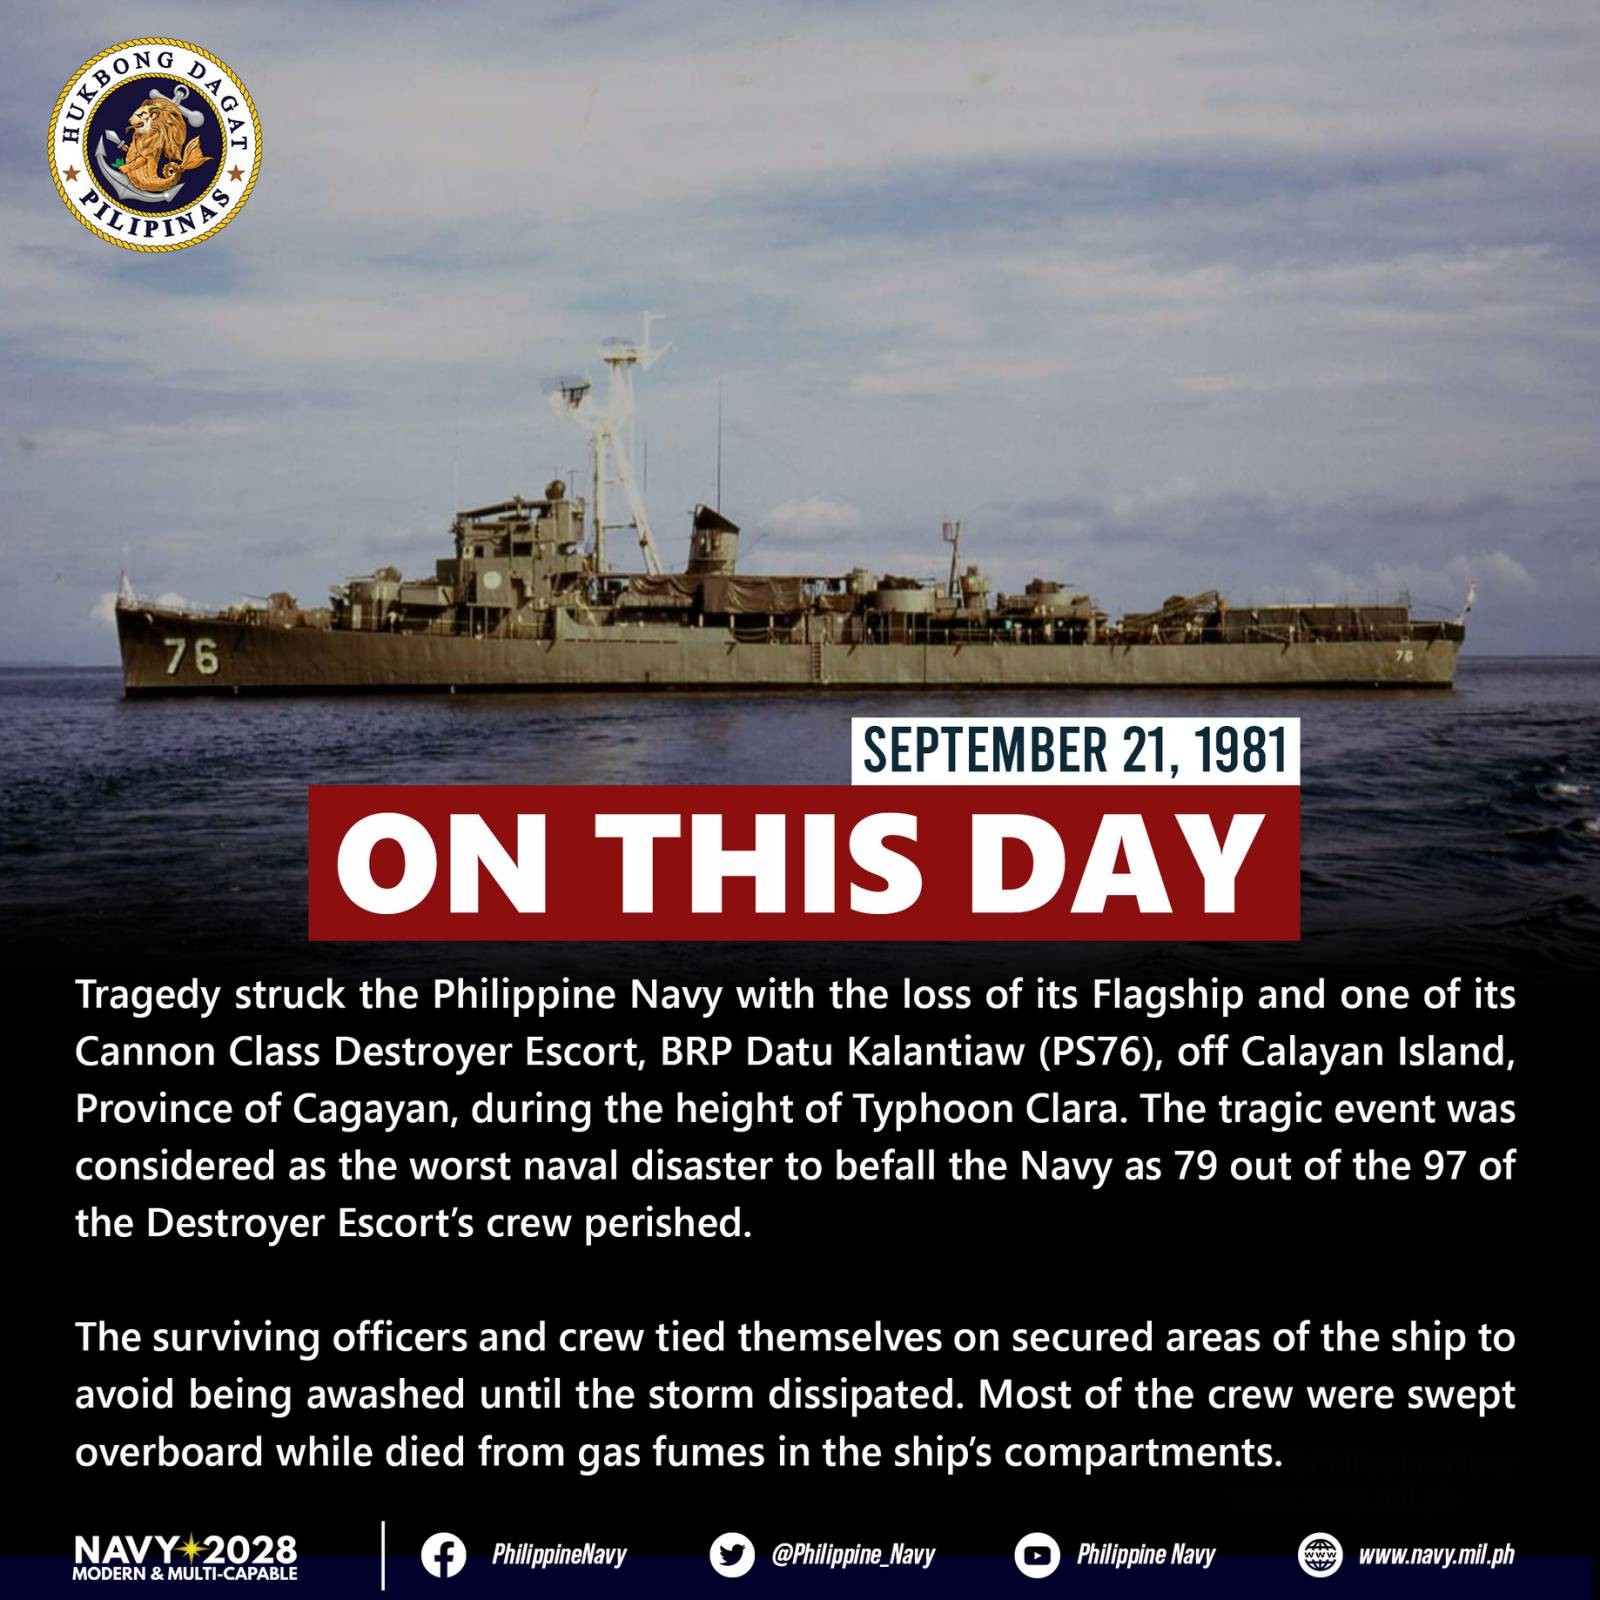 Image Title: The Tragedy of BRP Datu Kalantiaw (PS-76)